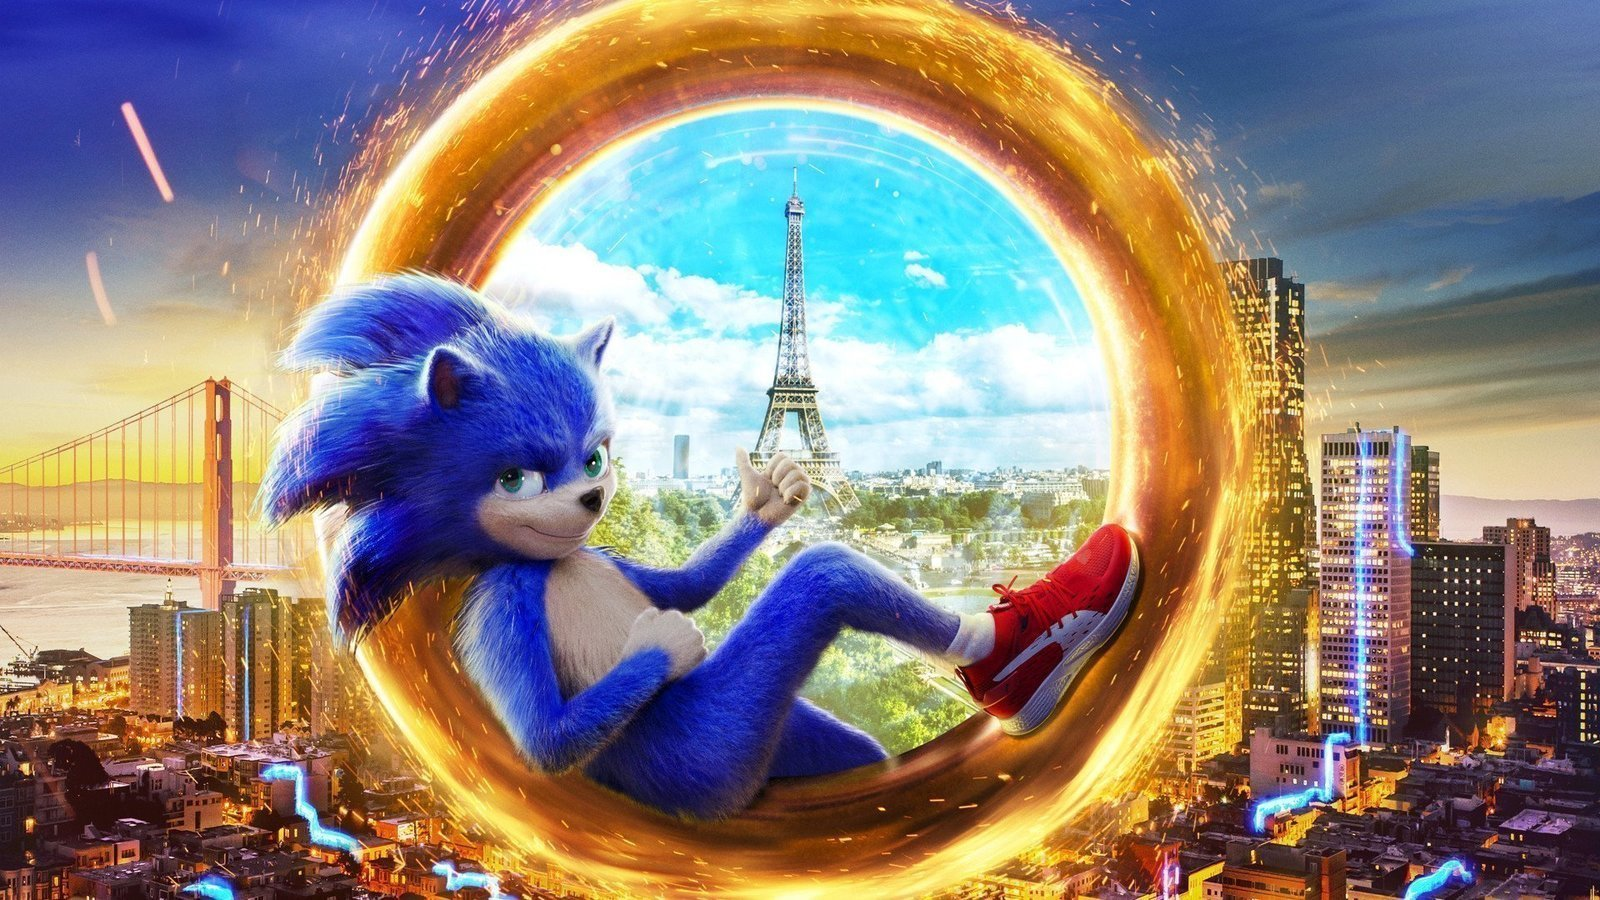 Petition Sonic The Hedgehog Full Movie 2020 Change Org